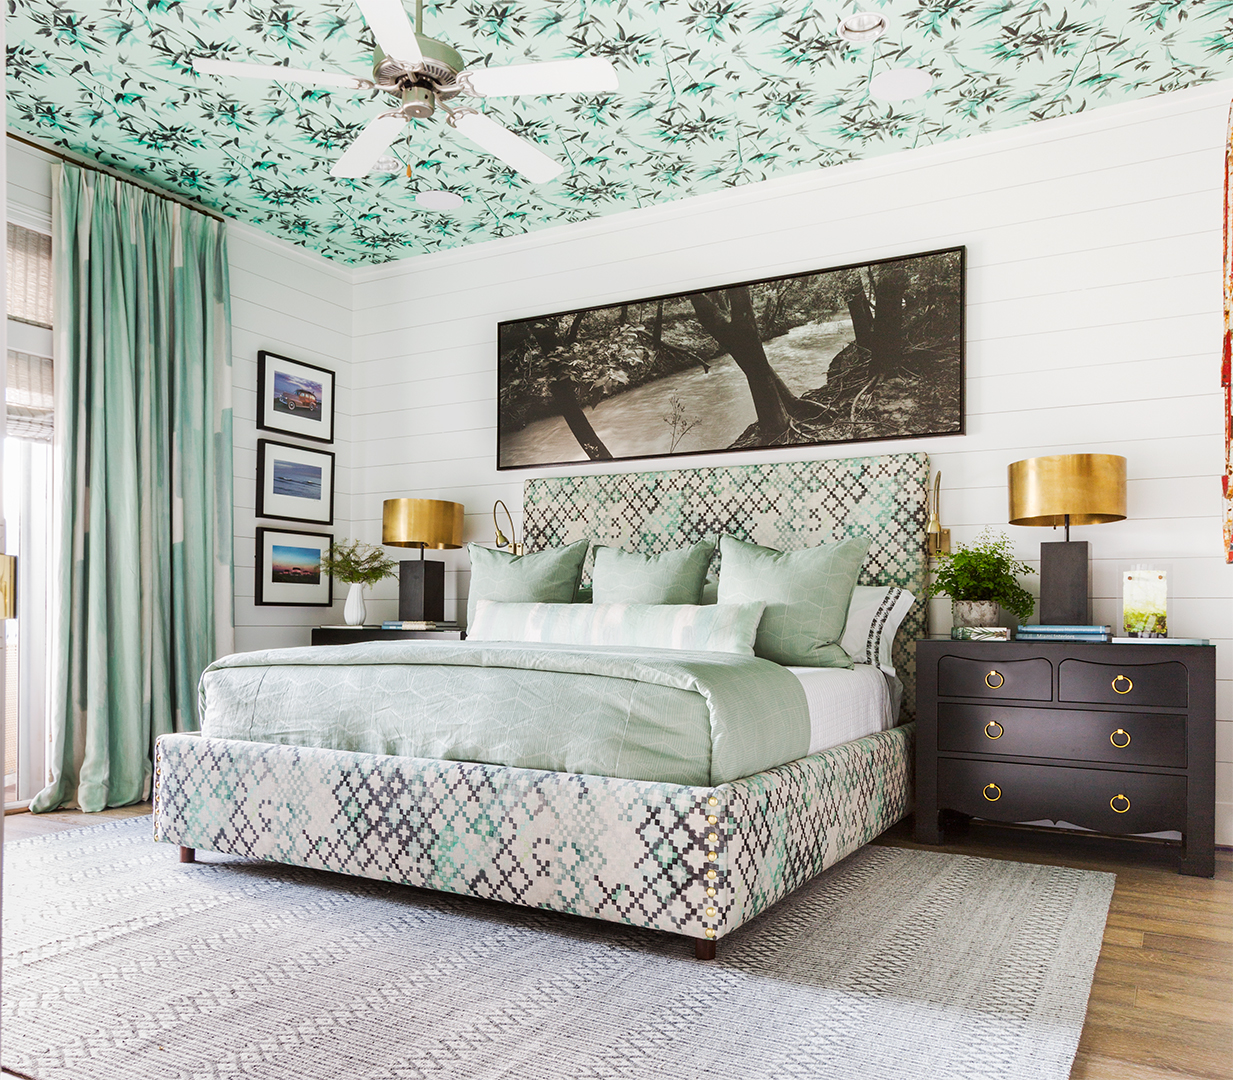 seafoam green bedroom with palm patterned ceiling